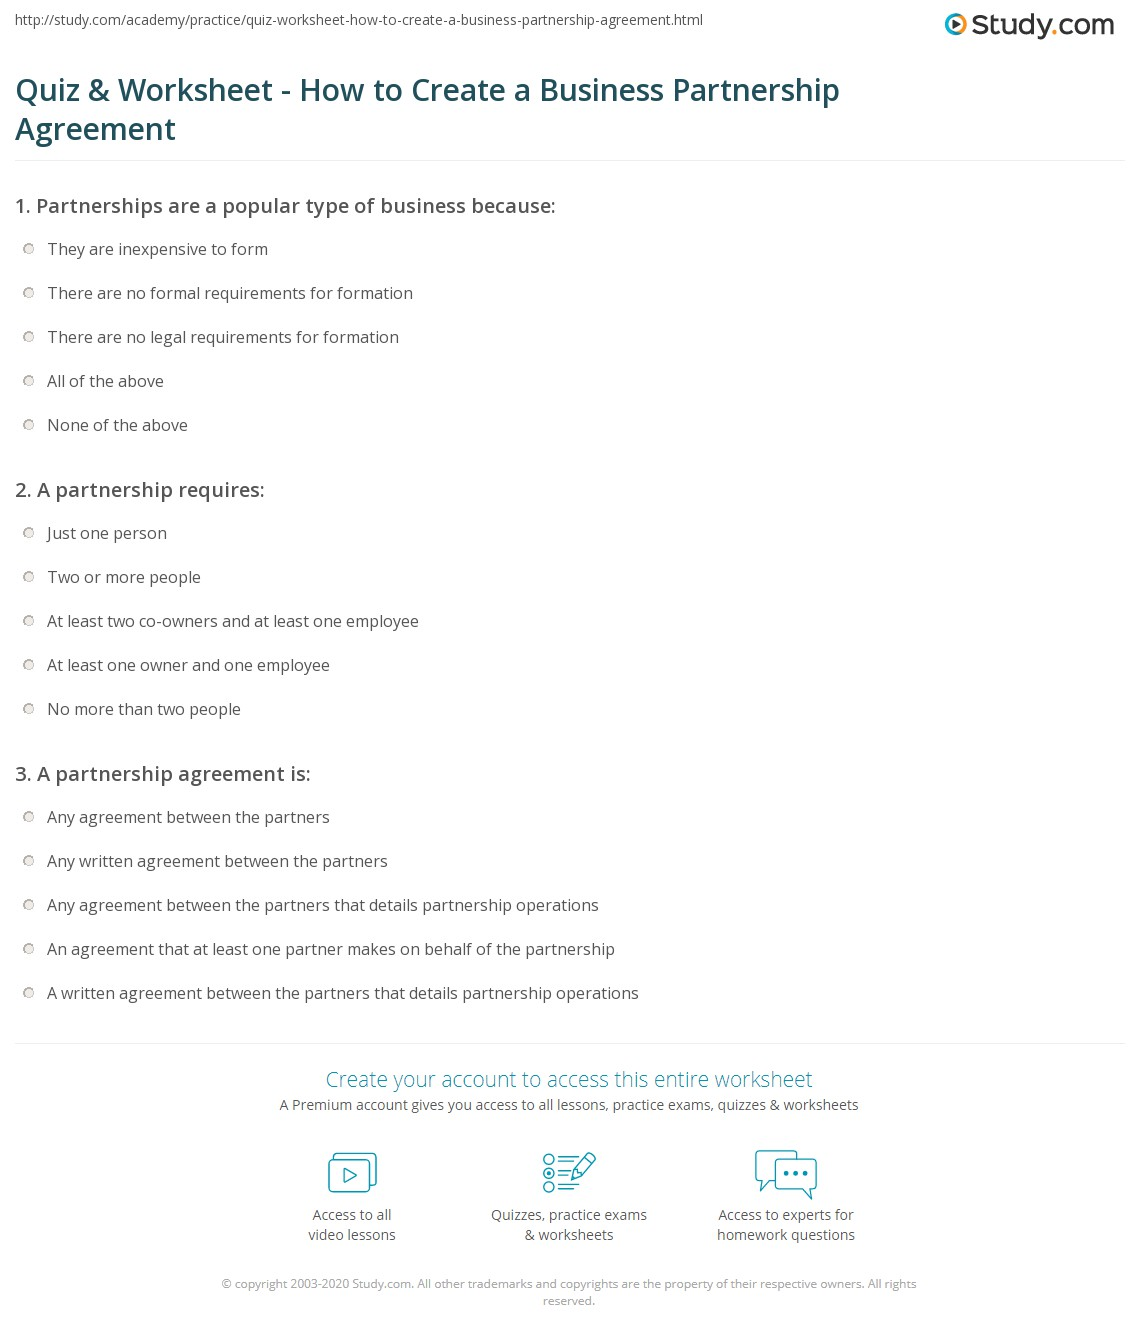 Quiz Worksheet How to Create a Business Partnership Agreement – Business Partner Agreement